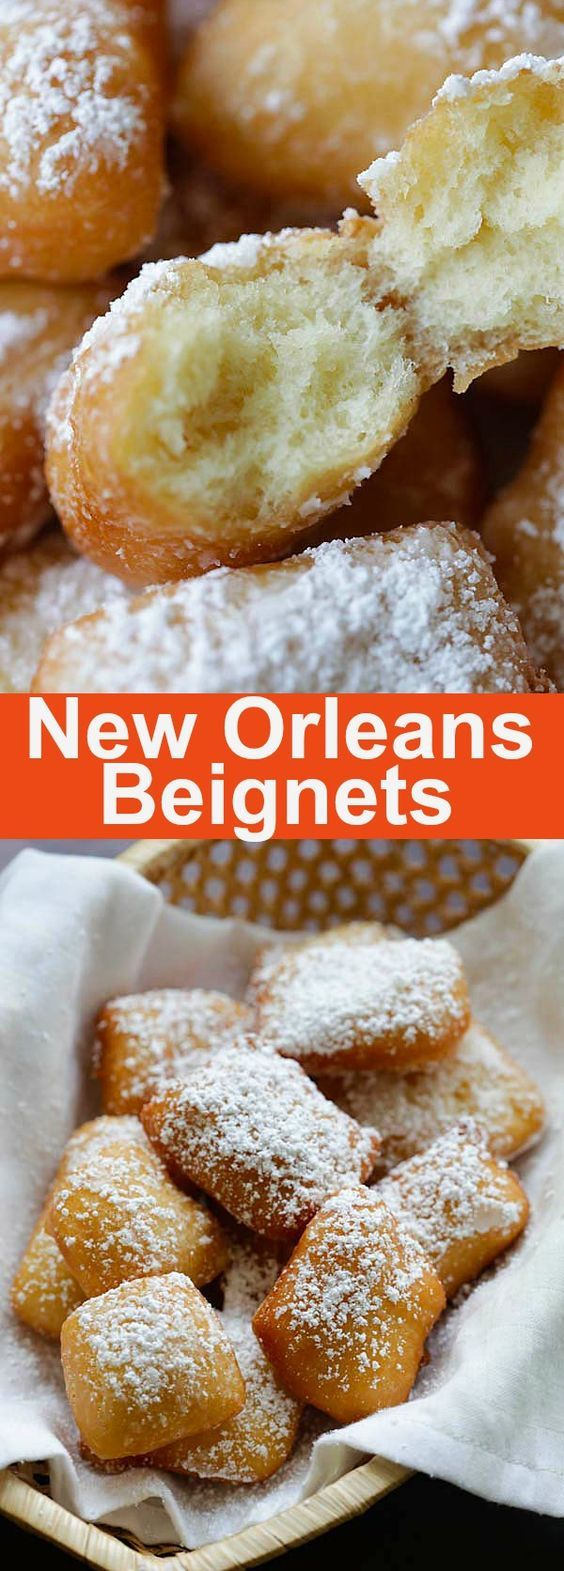 New Orleans Beignets - soft, pillowy and the best New Orleans beignets recipe ever. This recipe is fail-proof, anyone can make it | rasamalaysia.com